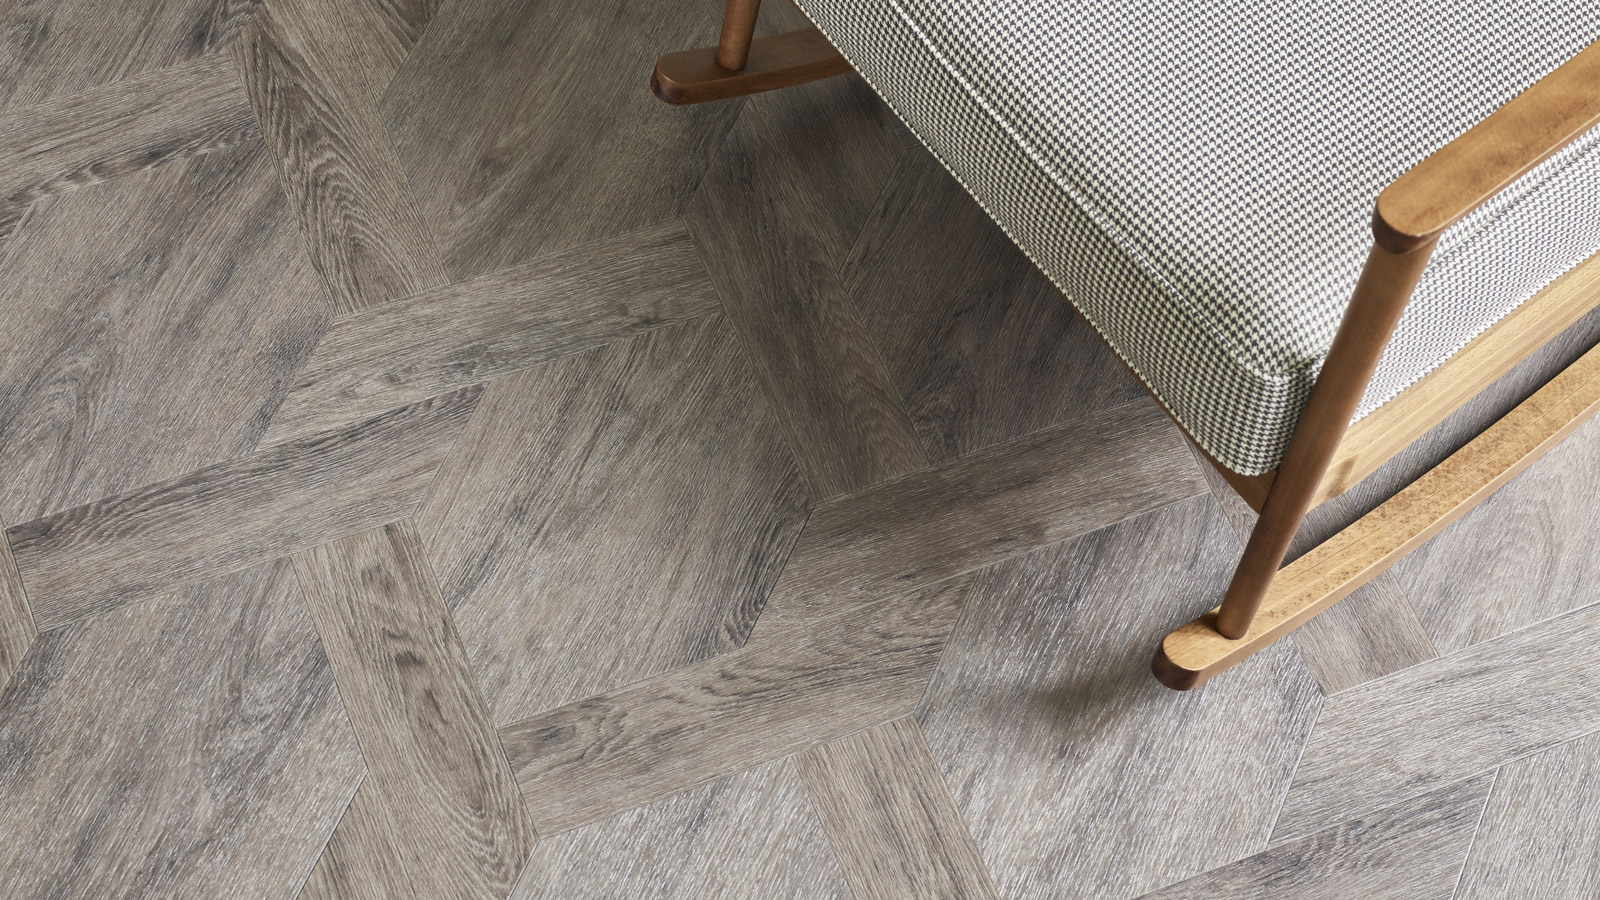 The Versailles, DC320 featuring Amtico Signature Versailles Oak, AR0W8460, in a Castel Weave laying pattern